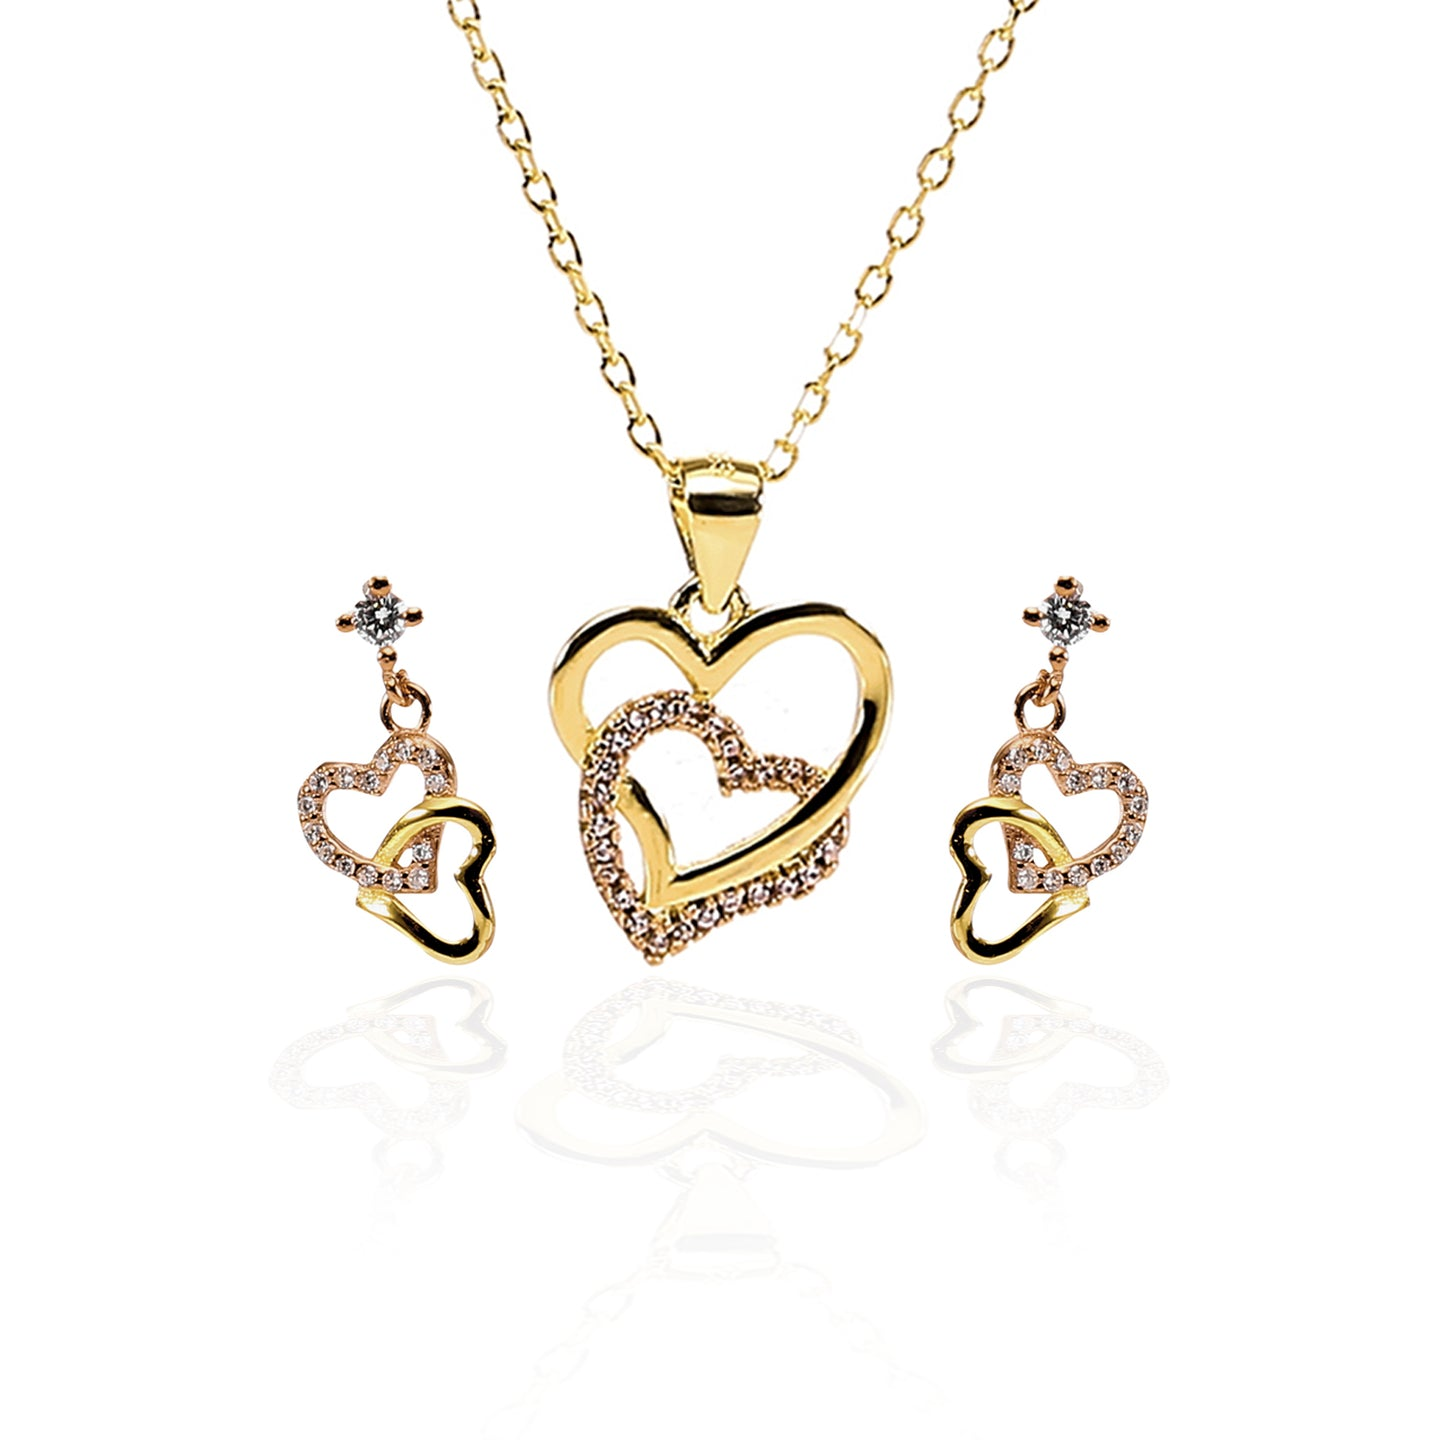 Forever Love Interlocked Heart Pendant Necklace and Earrings Set - ARJW1004GD - ARCADIO LIFESTYLE